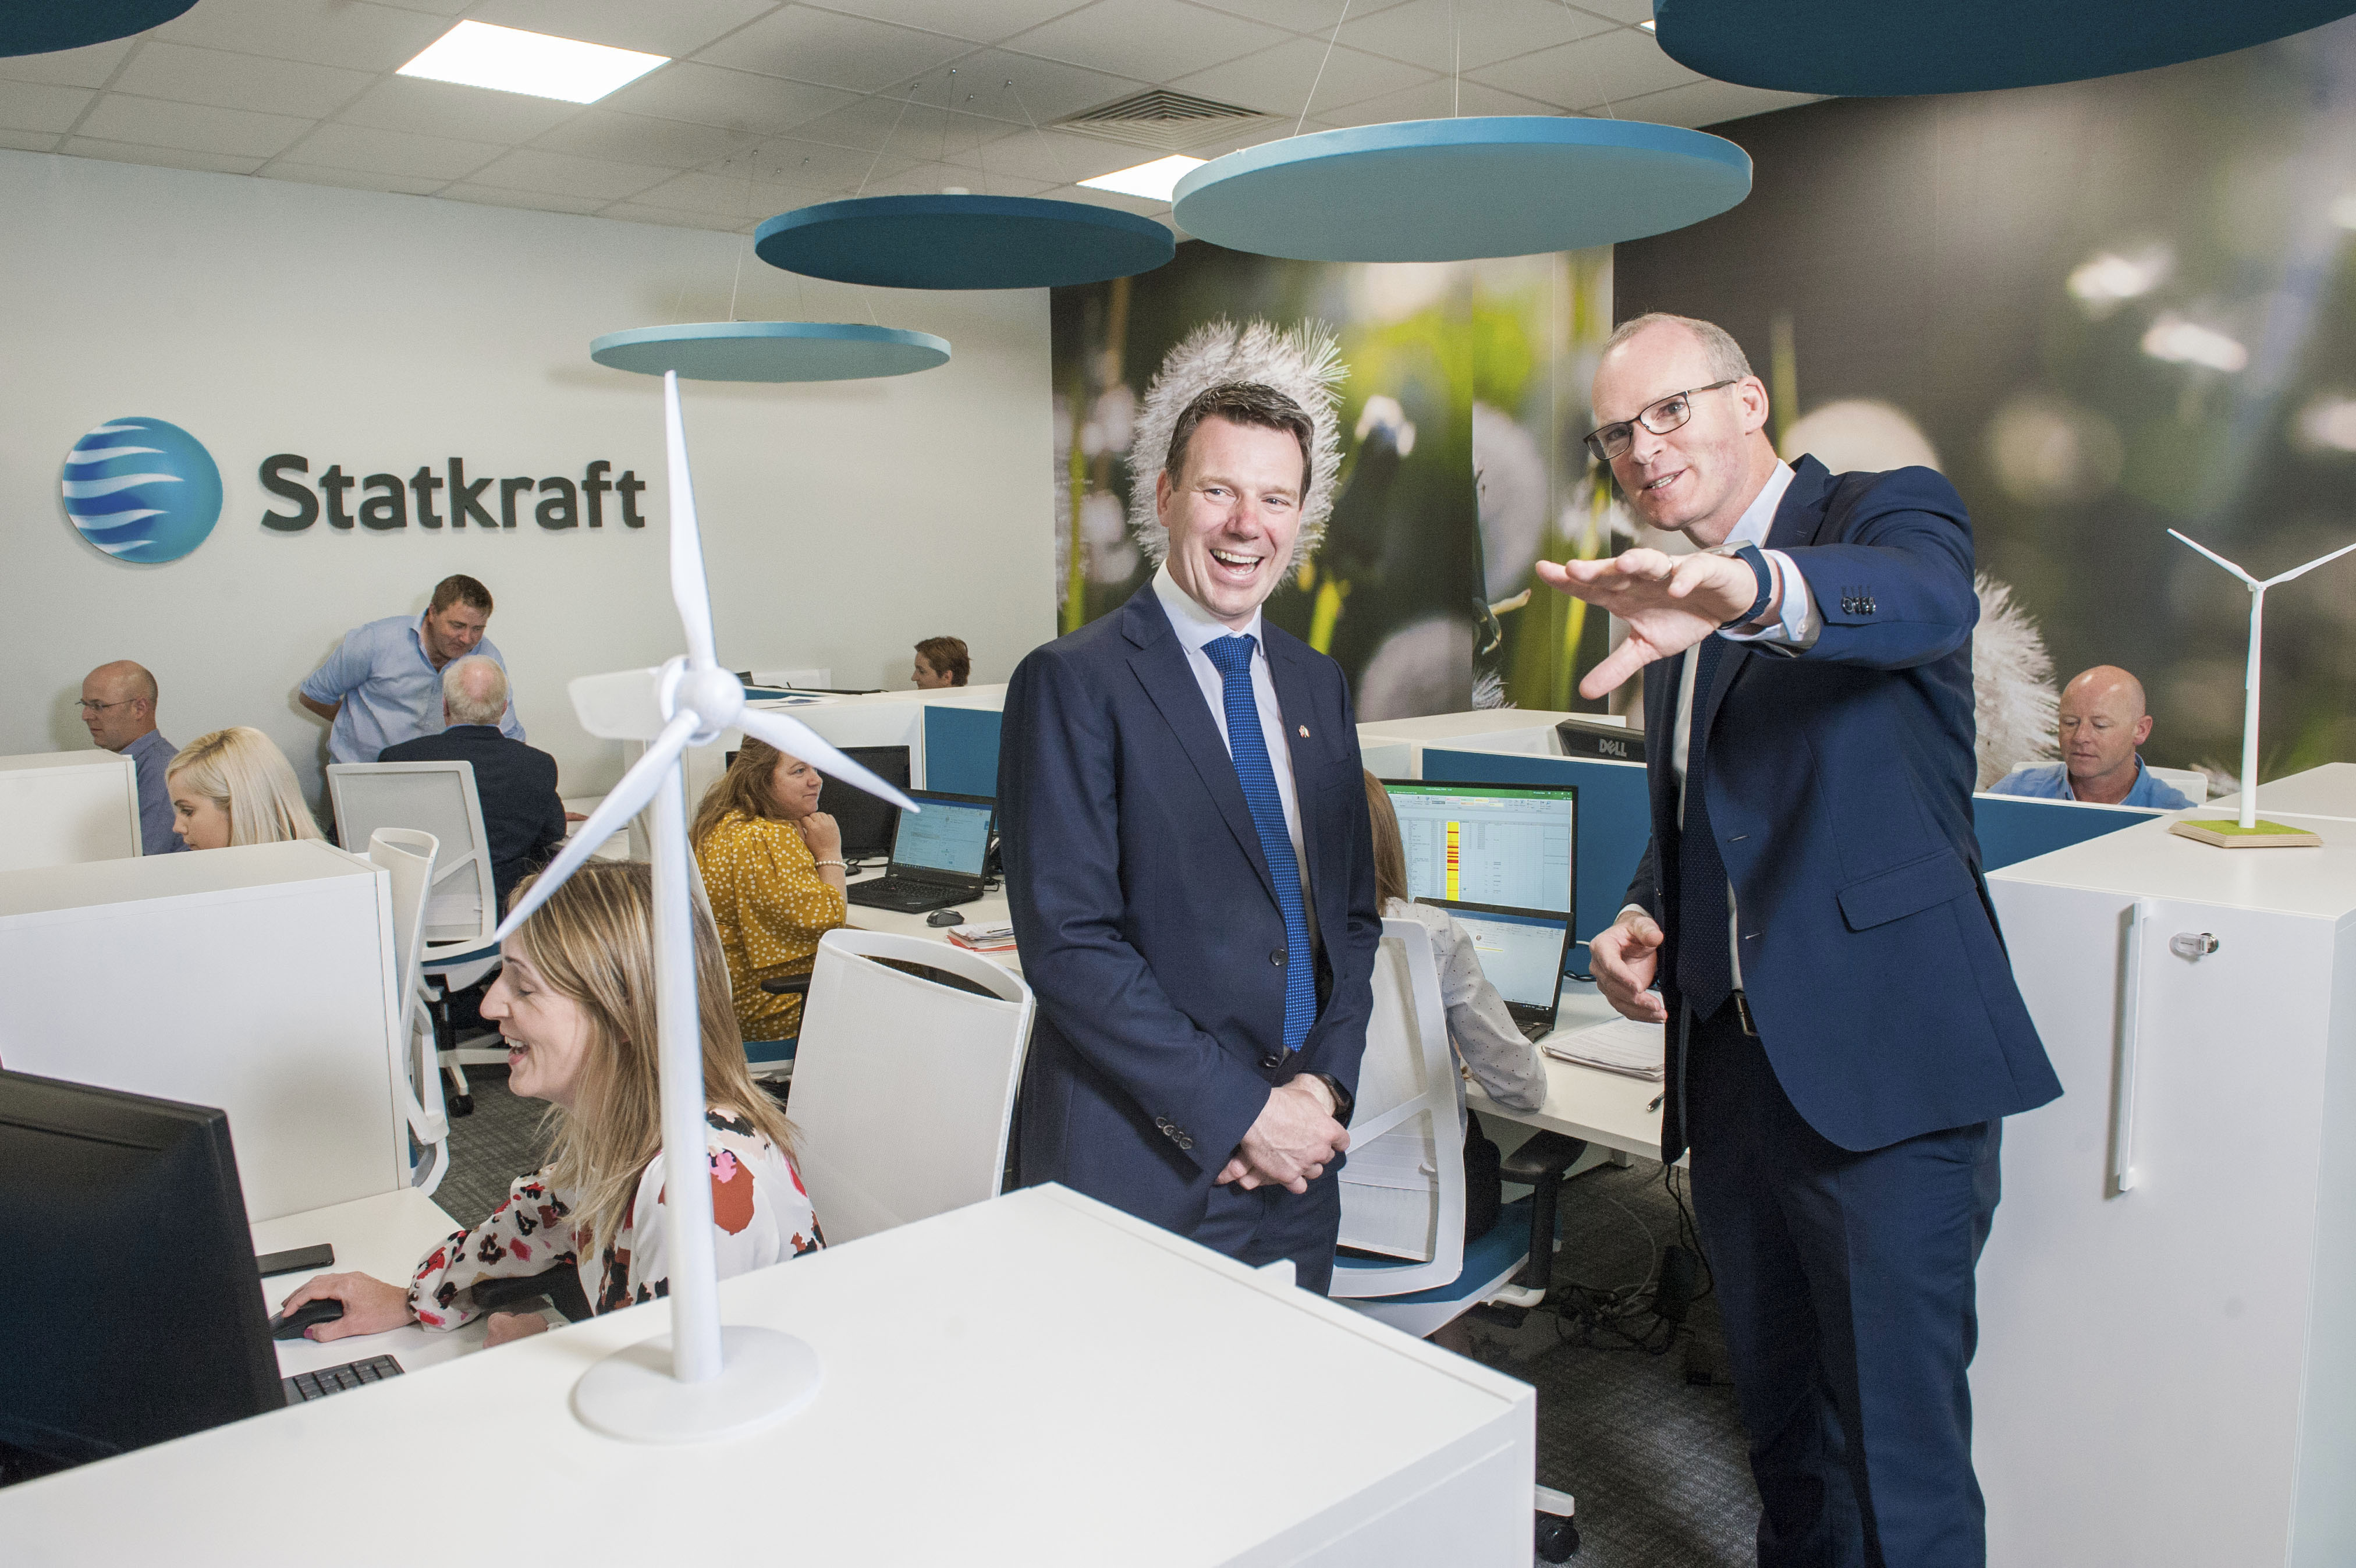 Minister for Foreign Affairs, Simon Coveney shares his vision of the Irish renewable sector with Statkraft Ireland Managing Director, Kevin O'Donovan at company's Irish headquarters in Cork